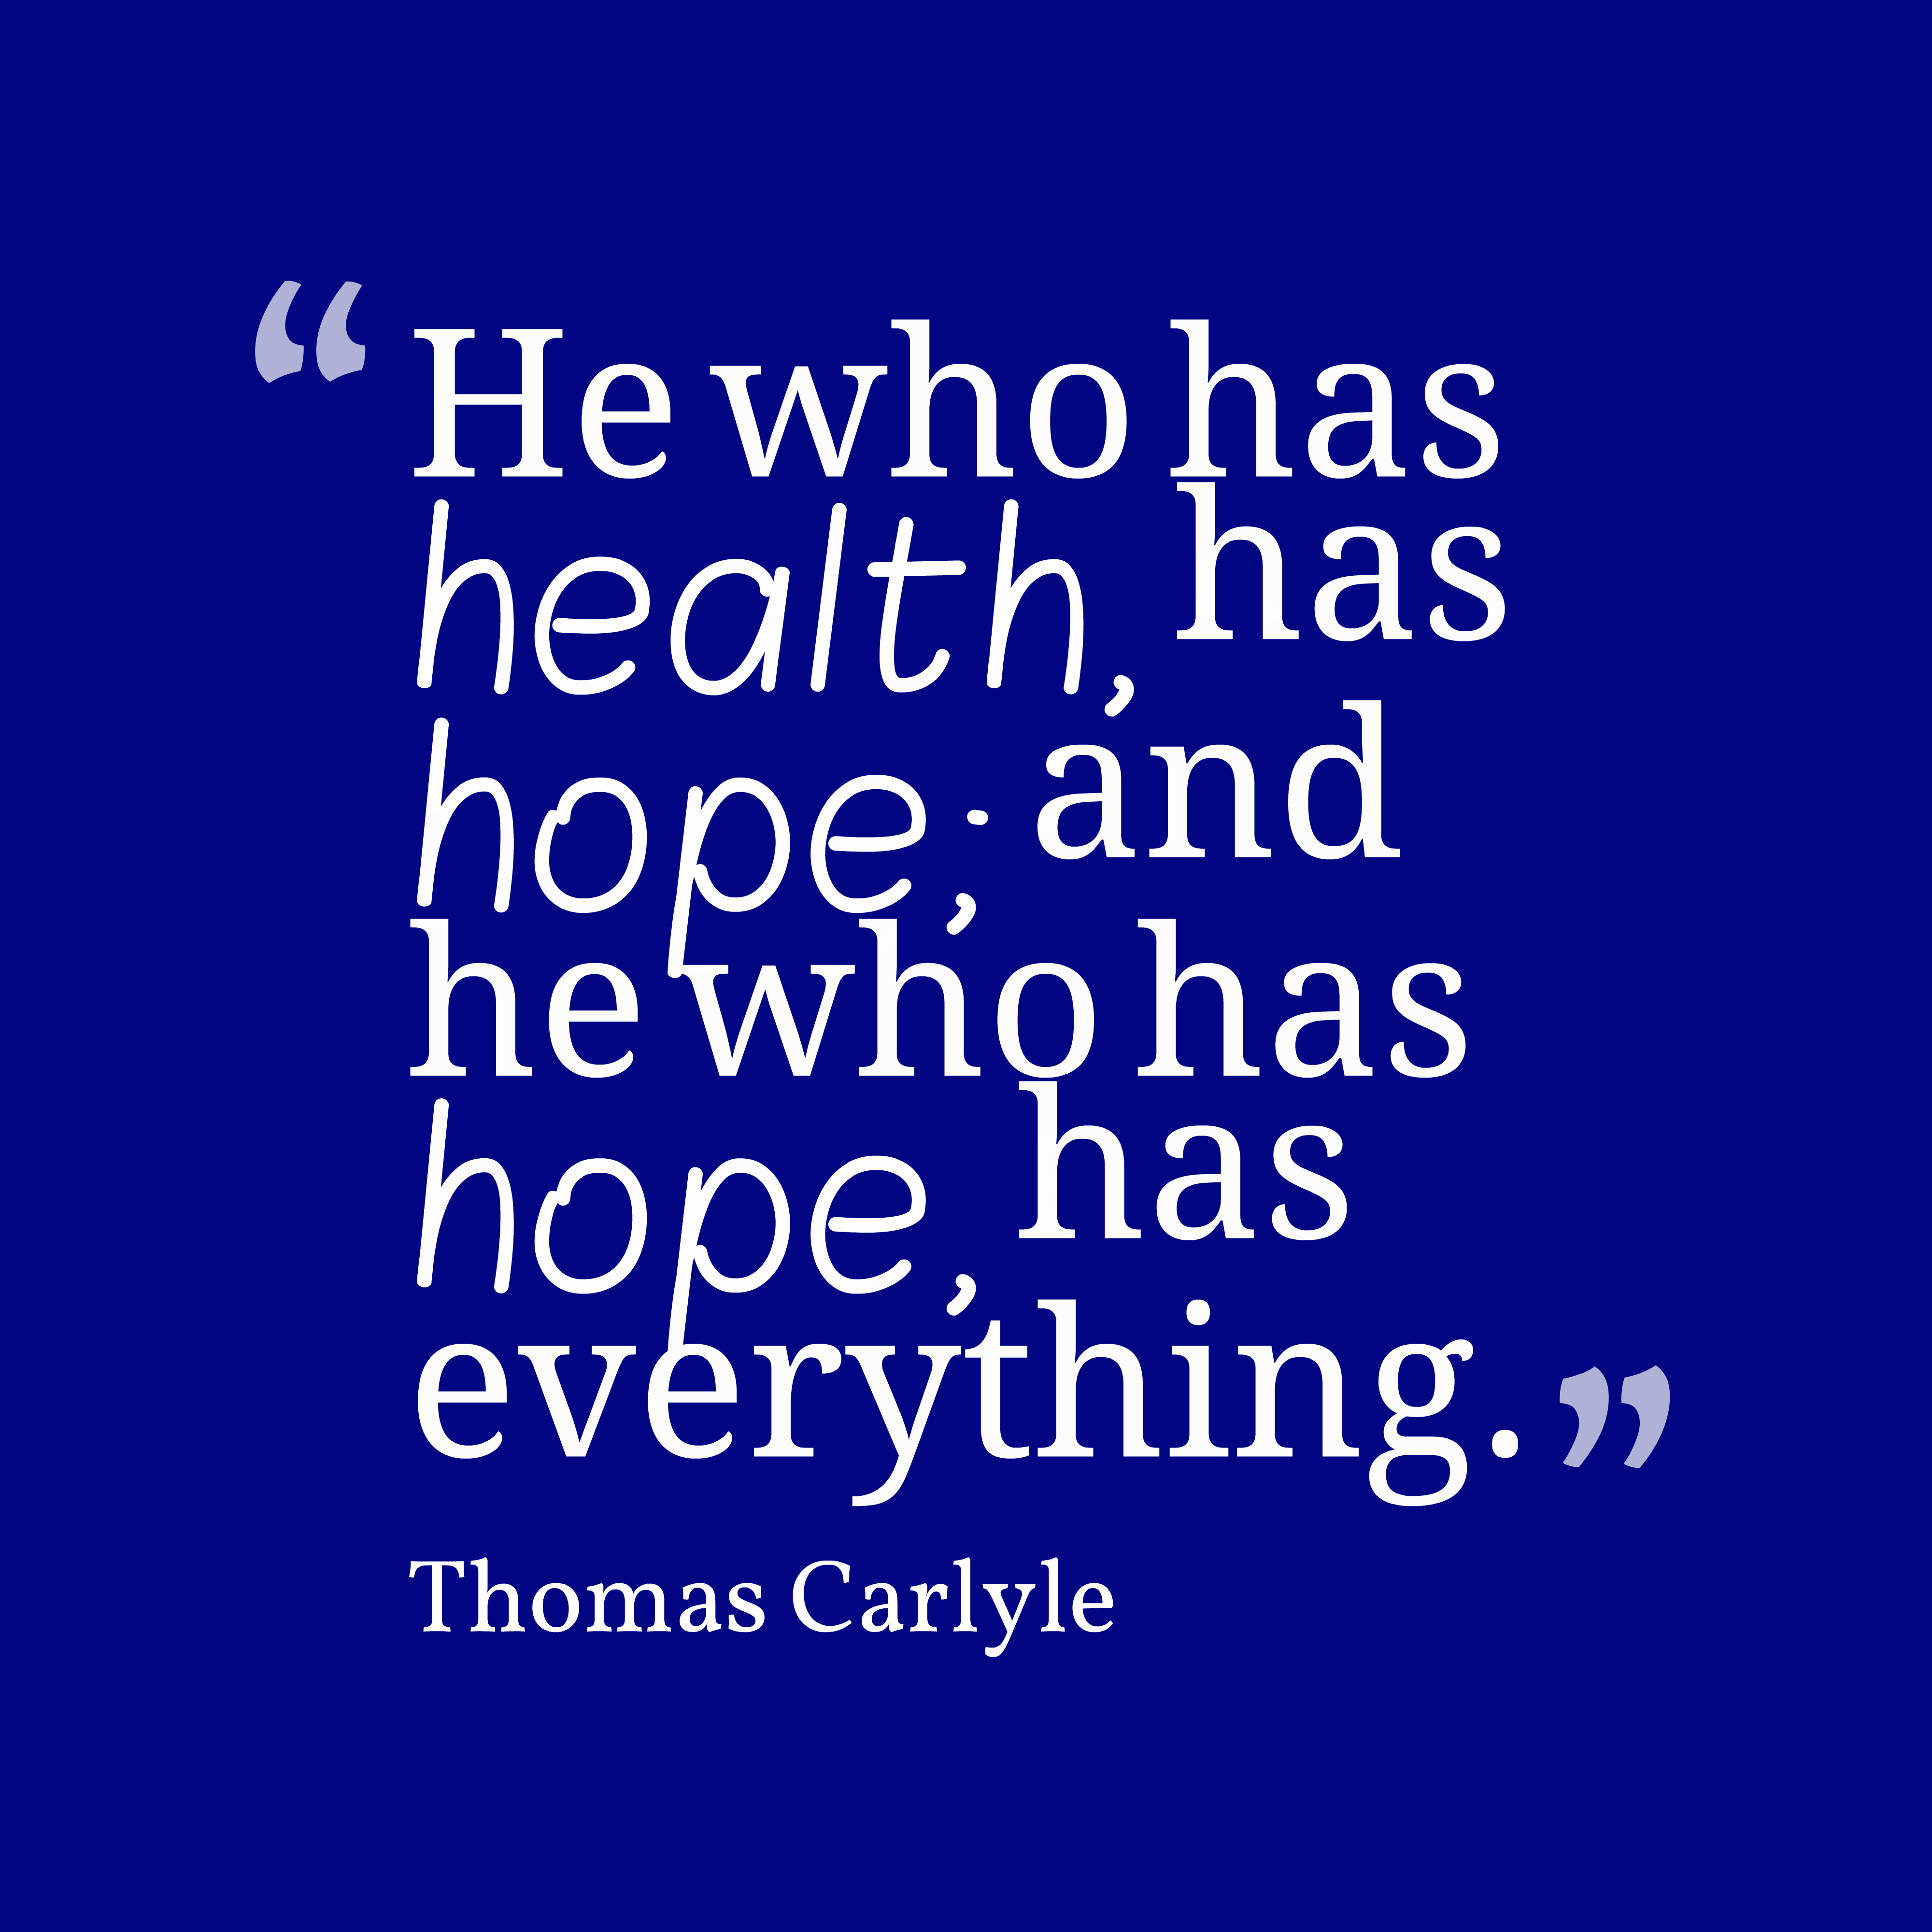 Quotes image of He who has health, has hope; and he who has hope, has everything.